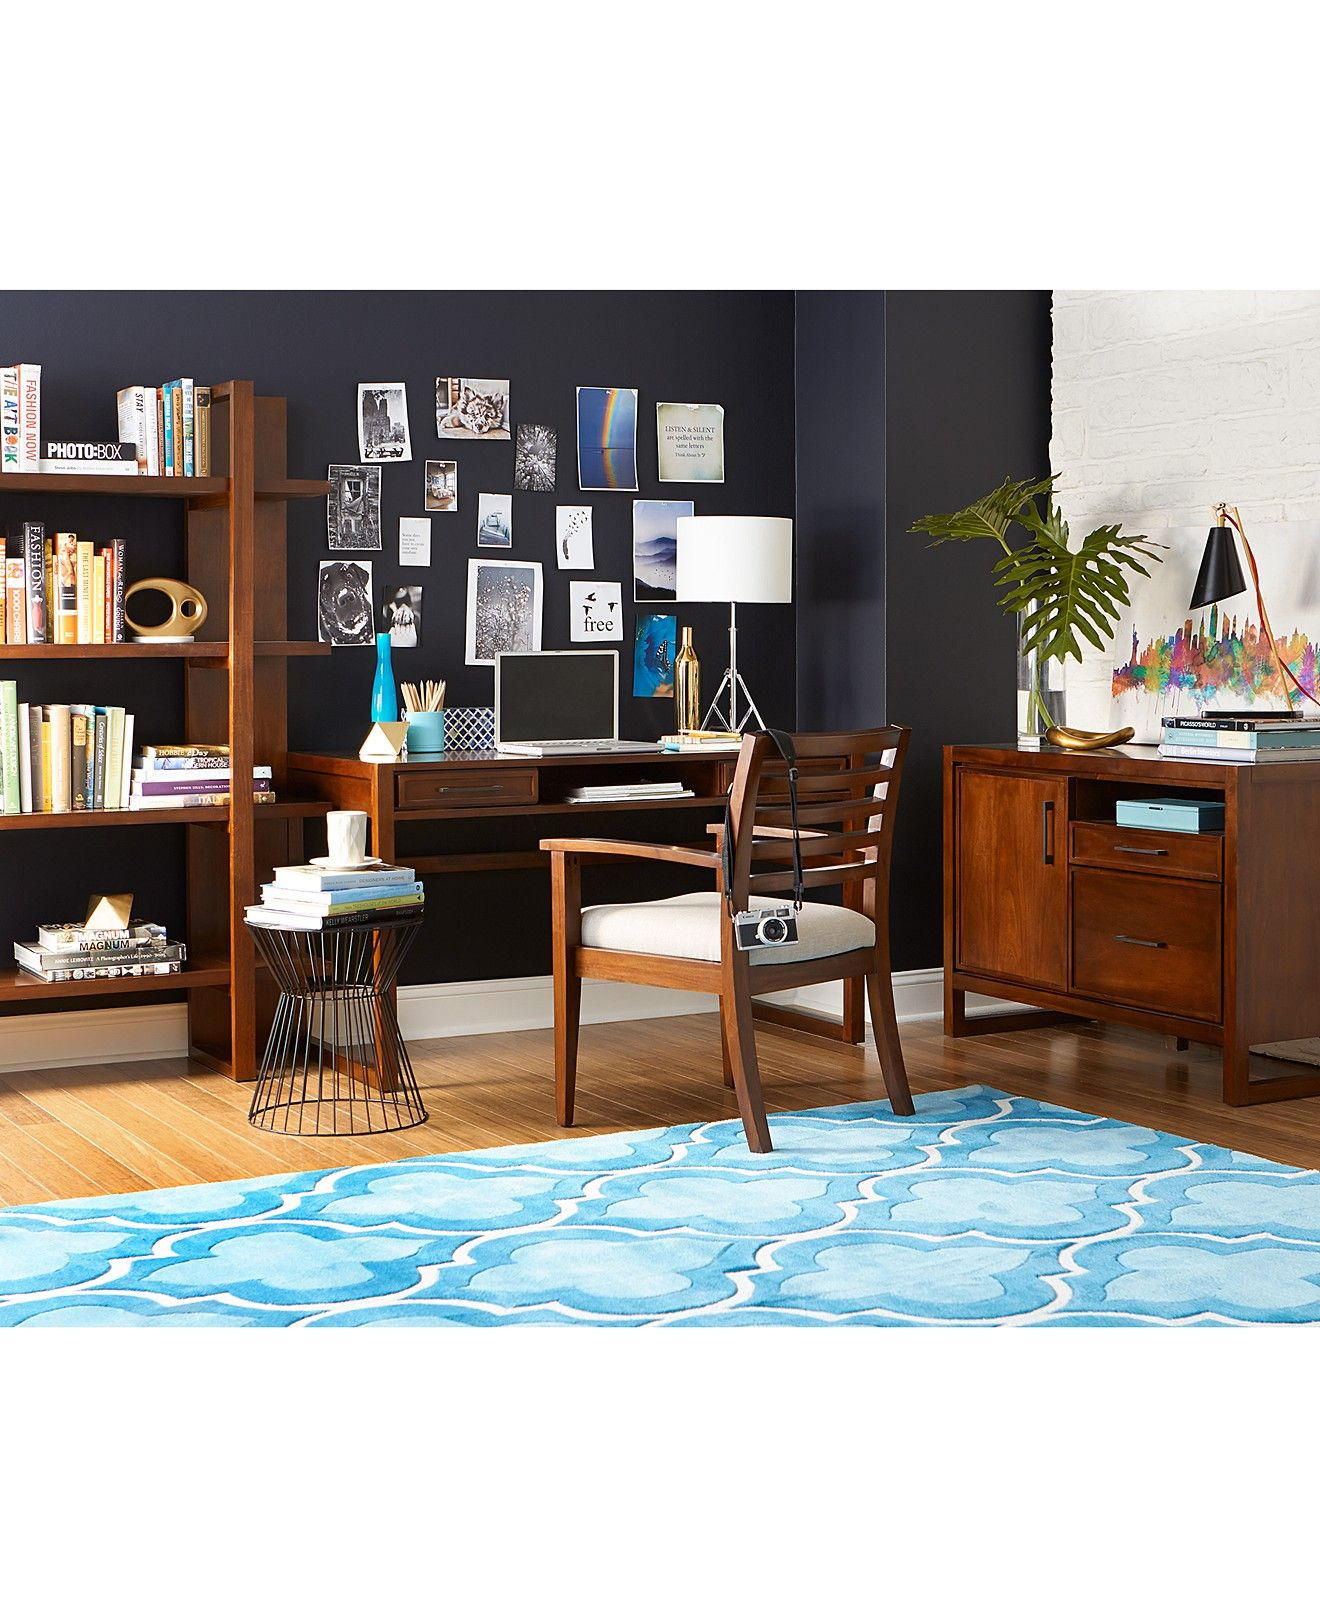 Battery Park Home Office Open Bookcase - Shop All Living Room ...